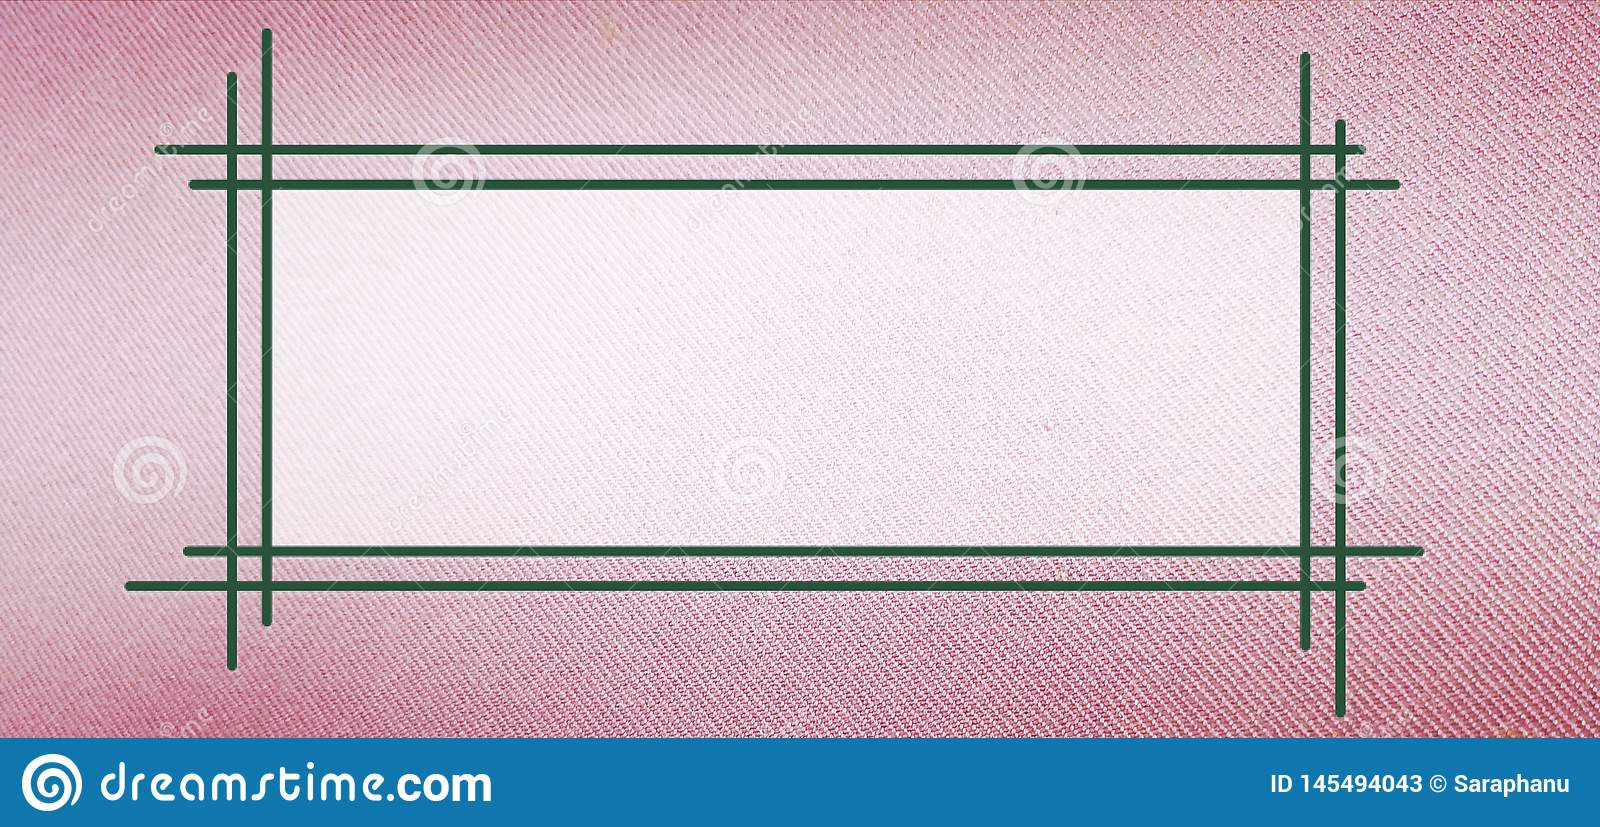 Text frame on pink cloth texture